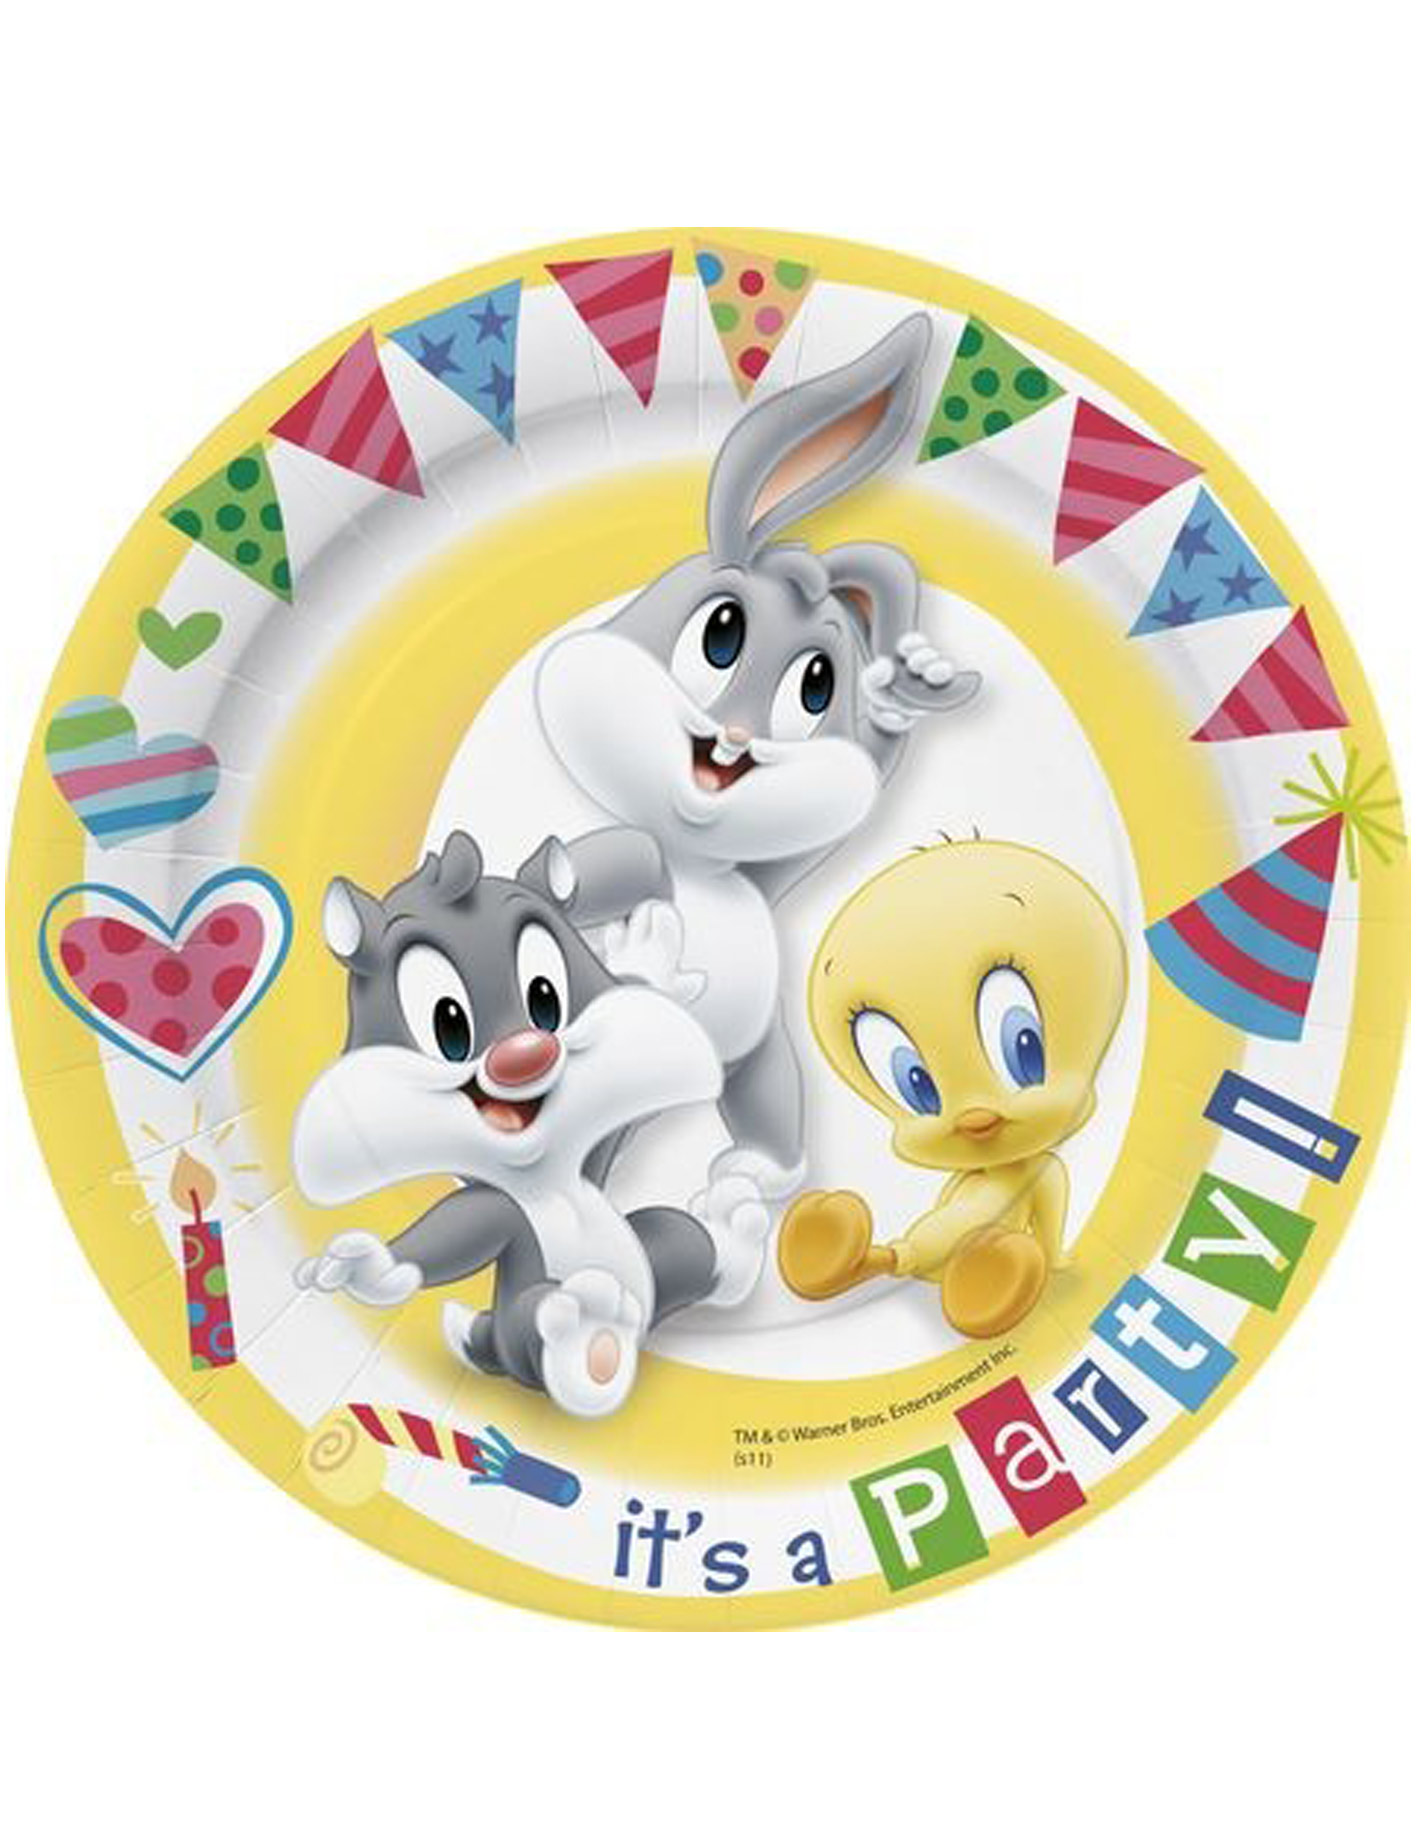 10 assiettes carton baby looney tunes achat de for Baby looney tune decoration